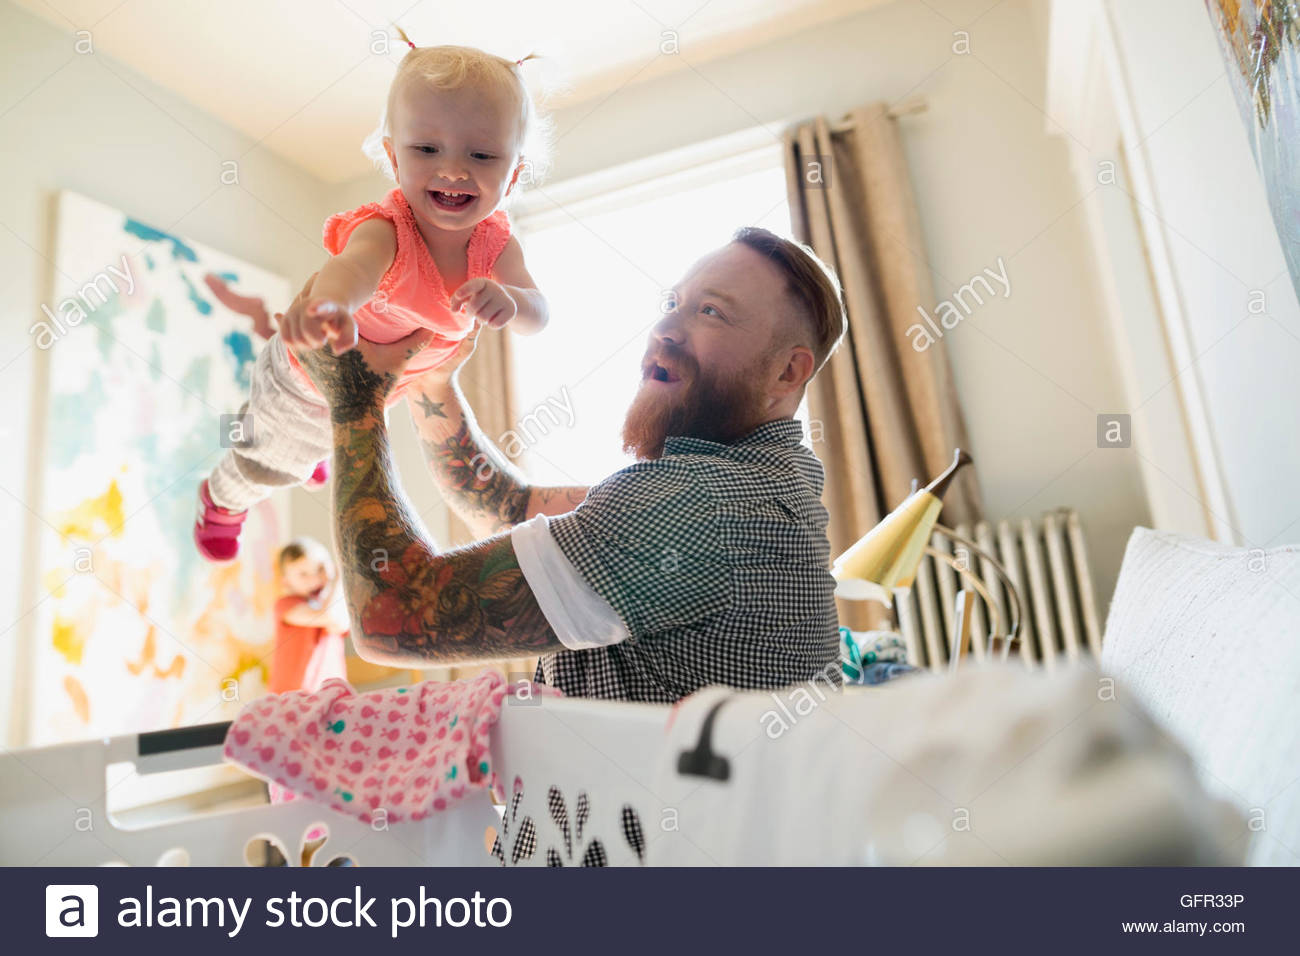 Father playfully lifting daughter over laundry basket - Stock Image